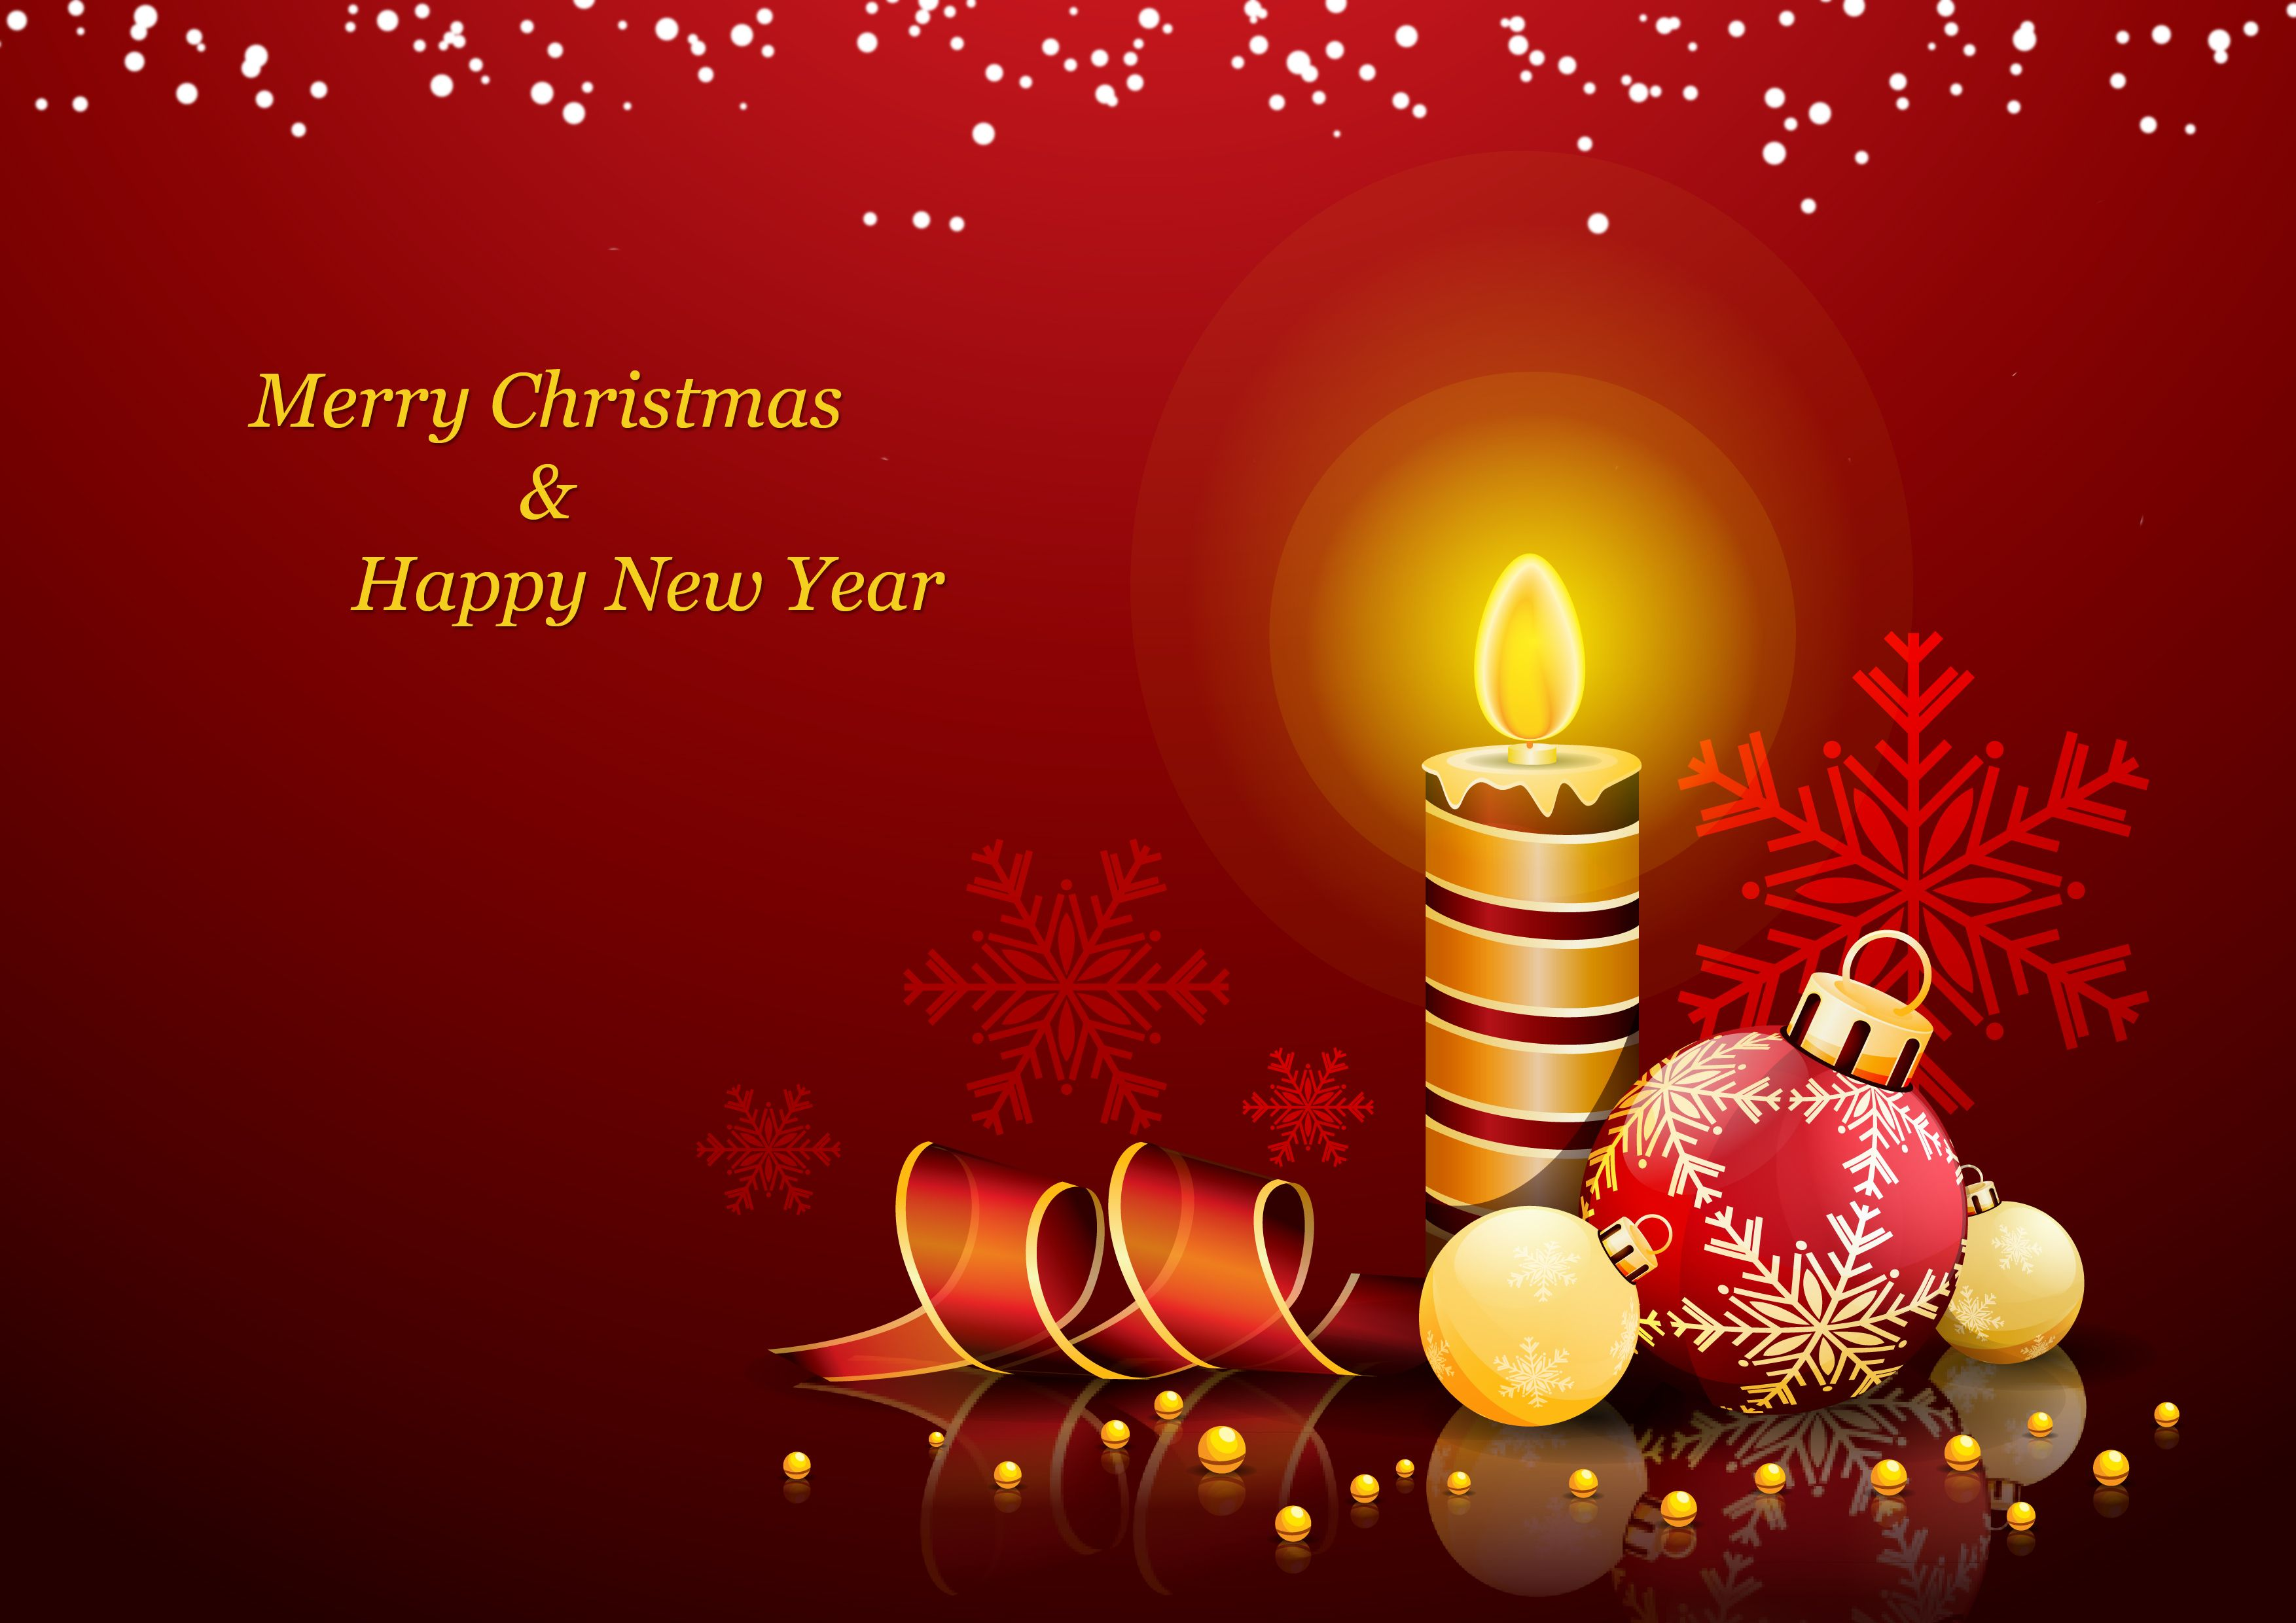 merry christmas and happy new year cards merry christmas and happy new year card